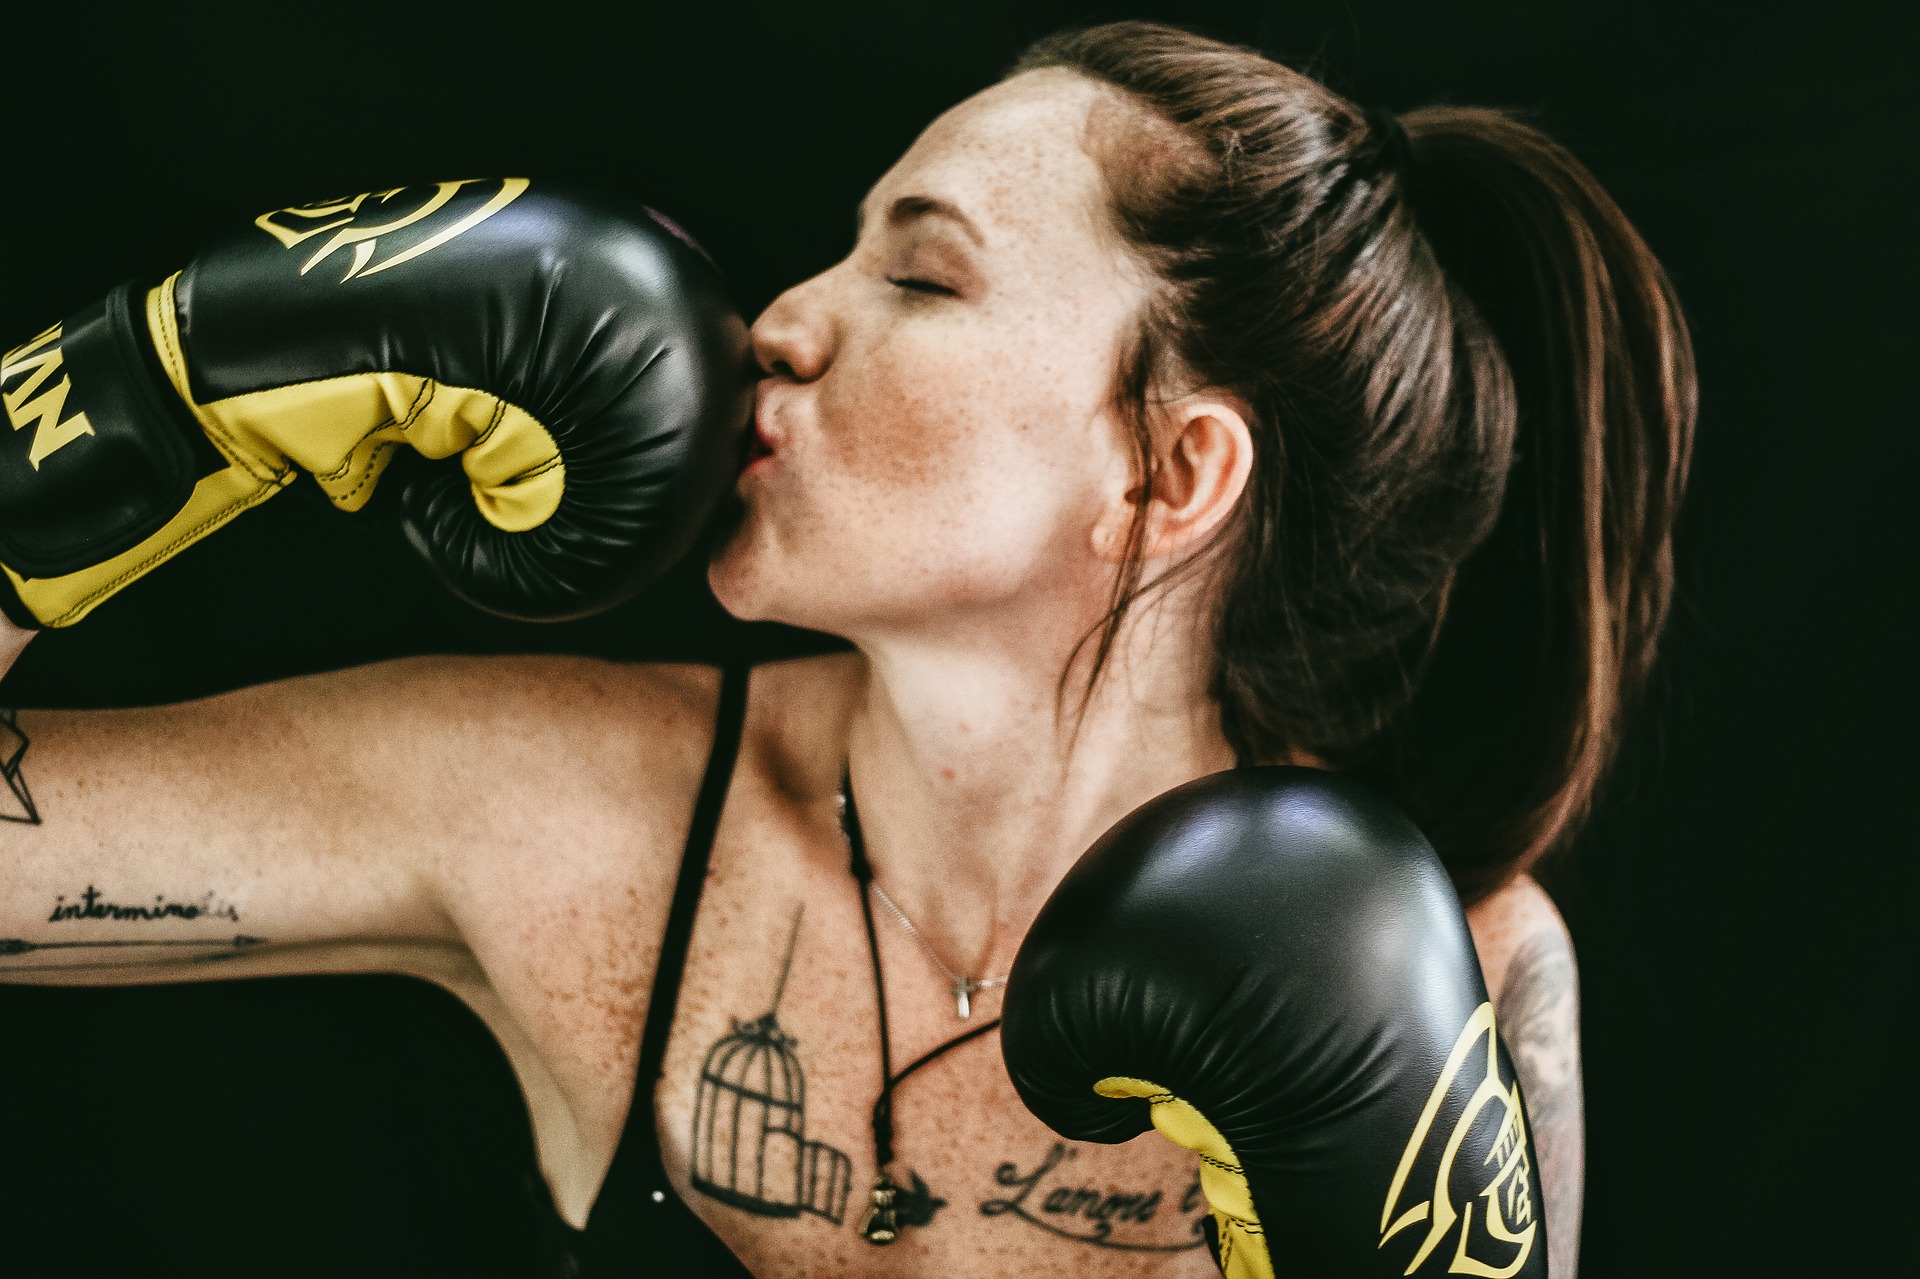 MaxPixel.freegreatpicture.com-Girl-Gloves-Fitness-People-Boxing-Exercise-2583466.jpg